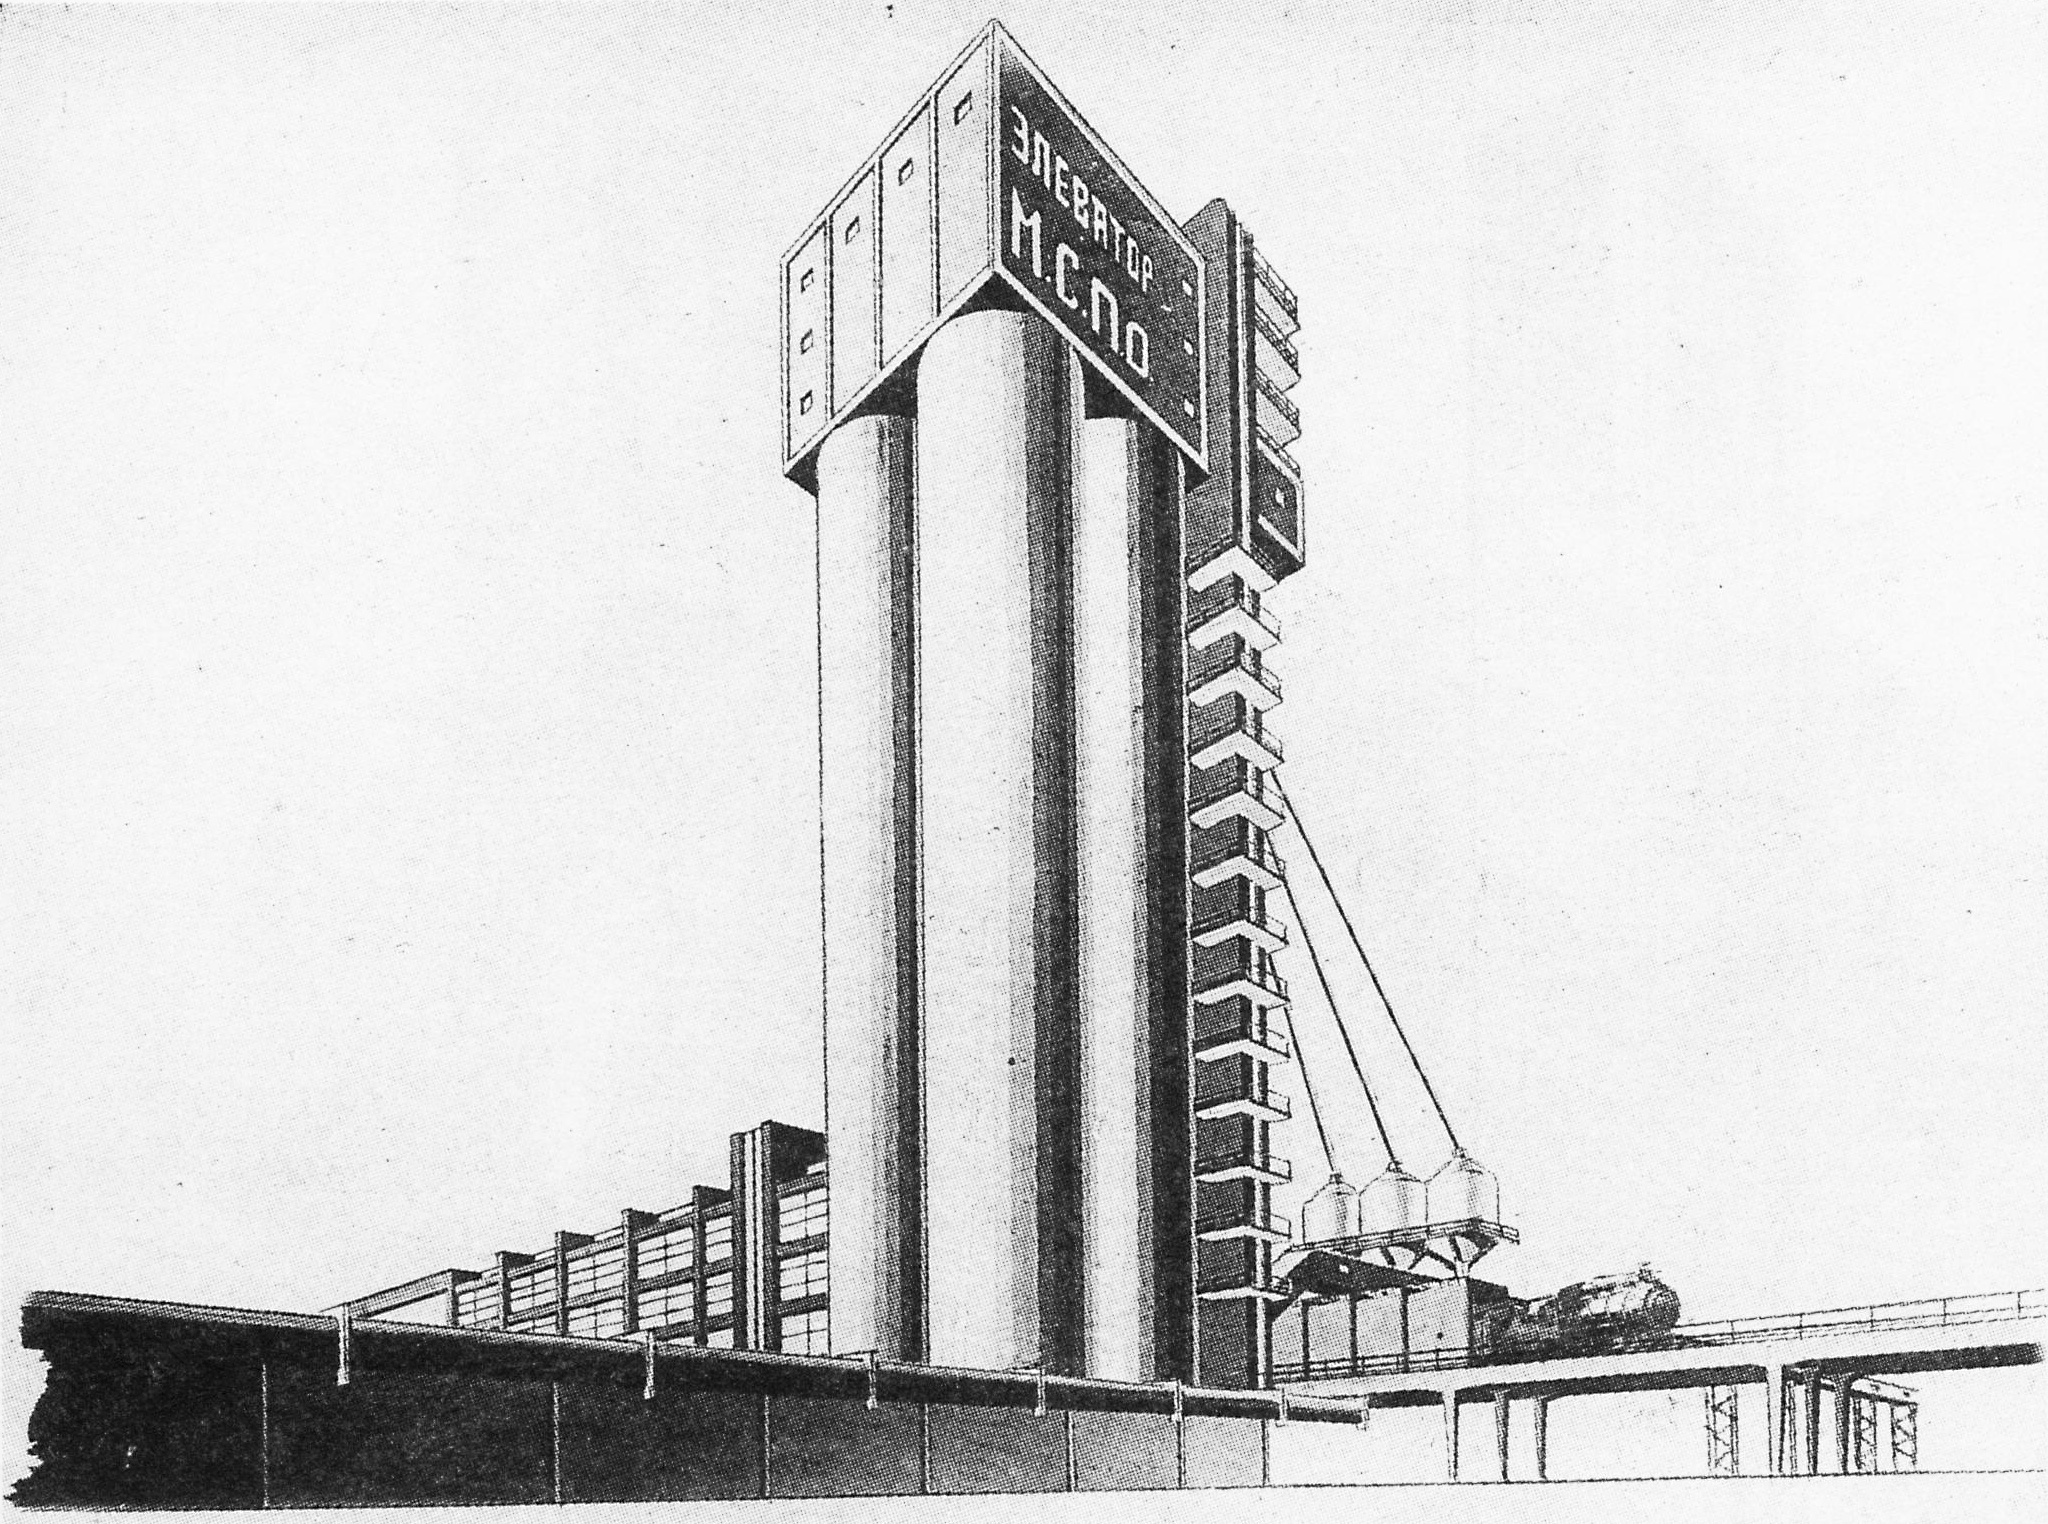 A. Mostakov, Perspective view of a bread factory (bread combine), 1925